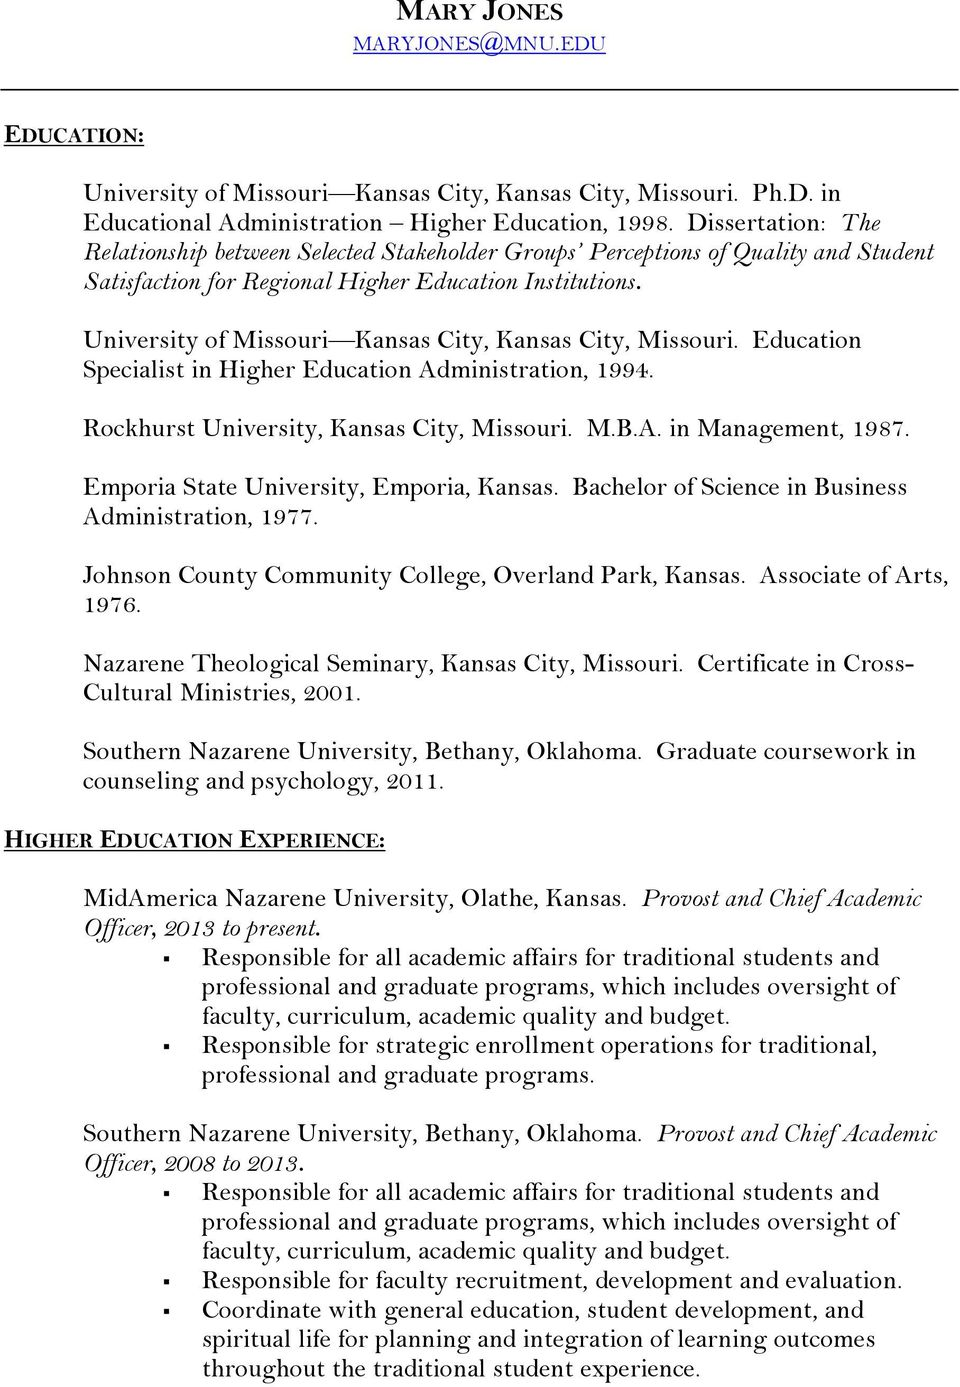 University of Missouri Kansas City, Kansas City, Missouri. Education Specialist in Higher Education Administration, 1994. Rockhurst University, Kansas City, Missouri. M.B.A. in Management, 1987.